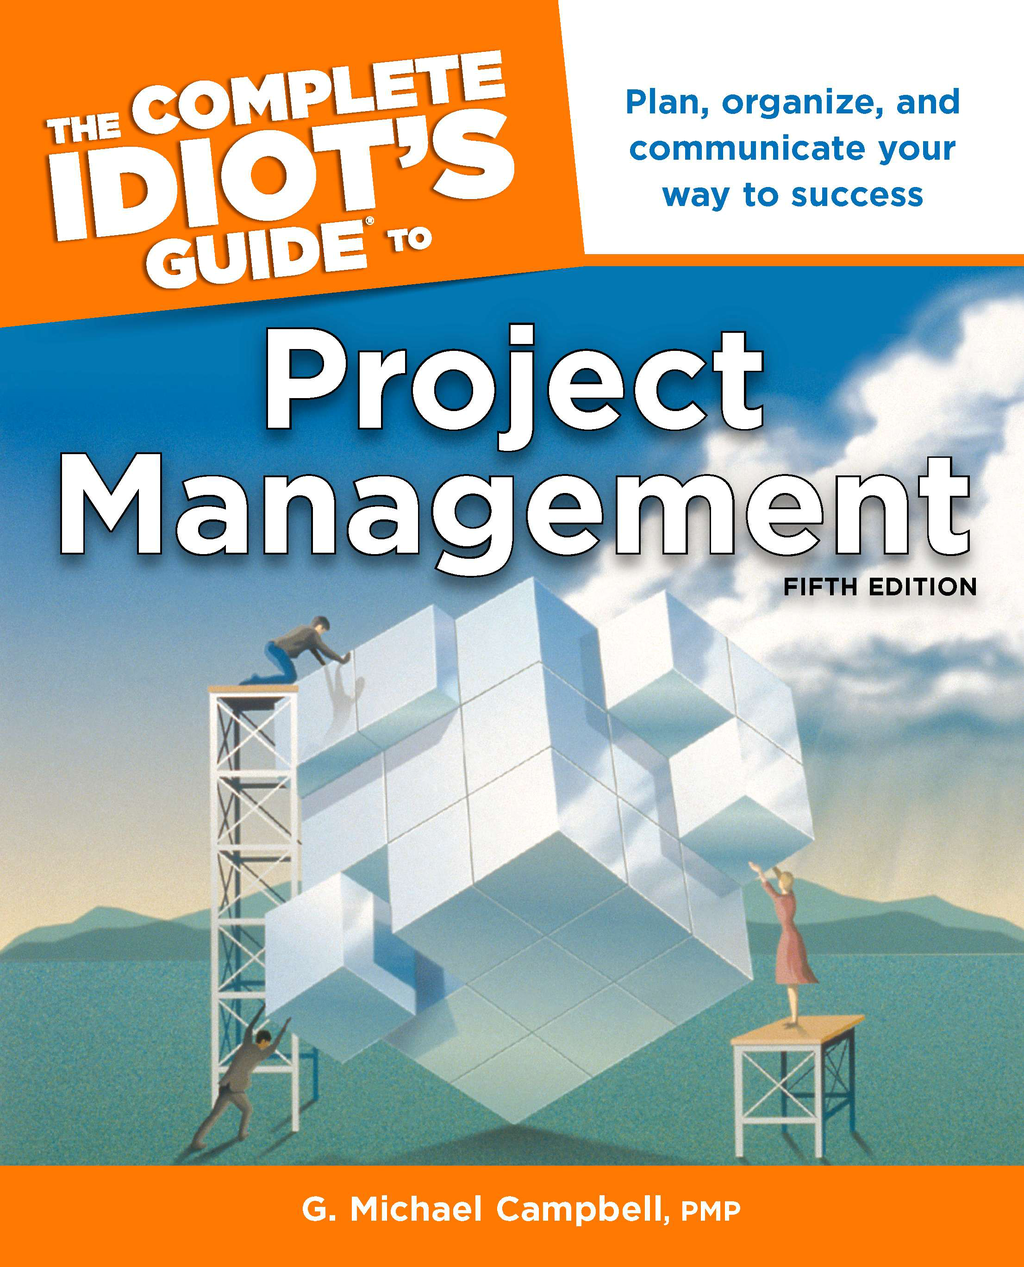 The Complete Idiot's Guide to Project Management, 5th Edition By: G. Michael Campbell